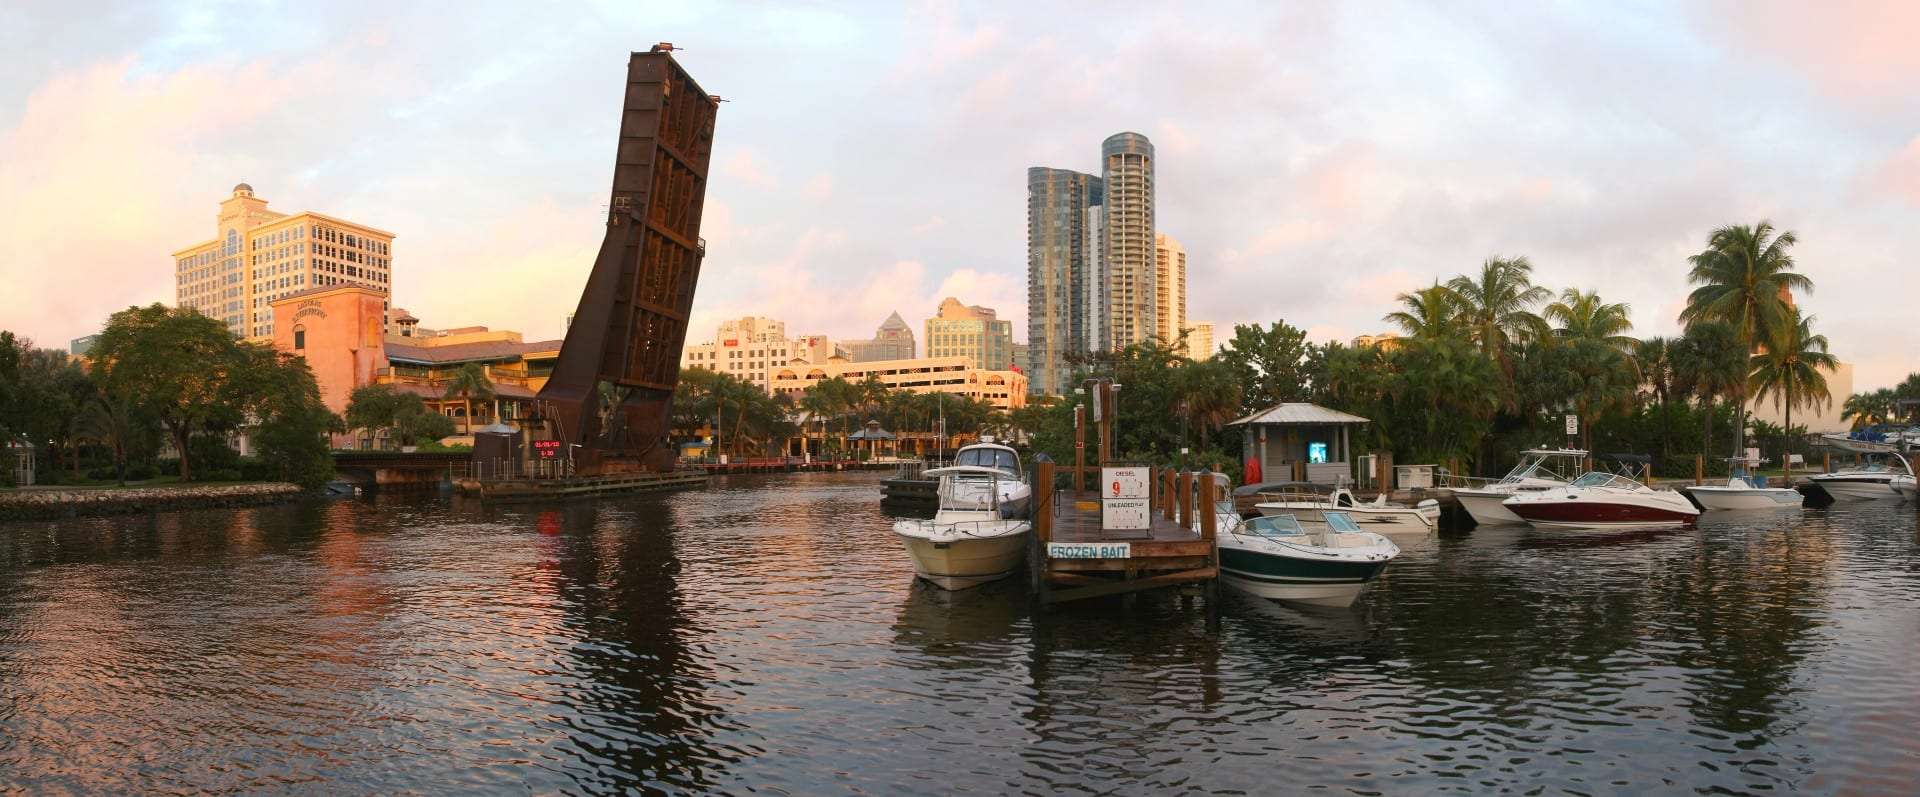 Skyline of city of Ft. Lauderdale